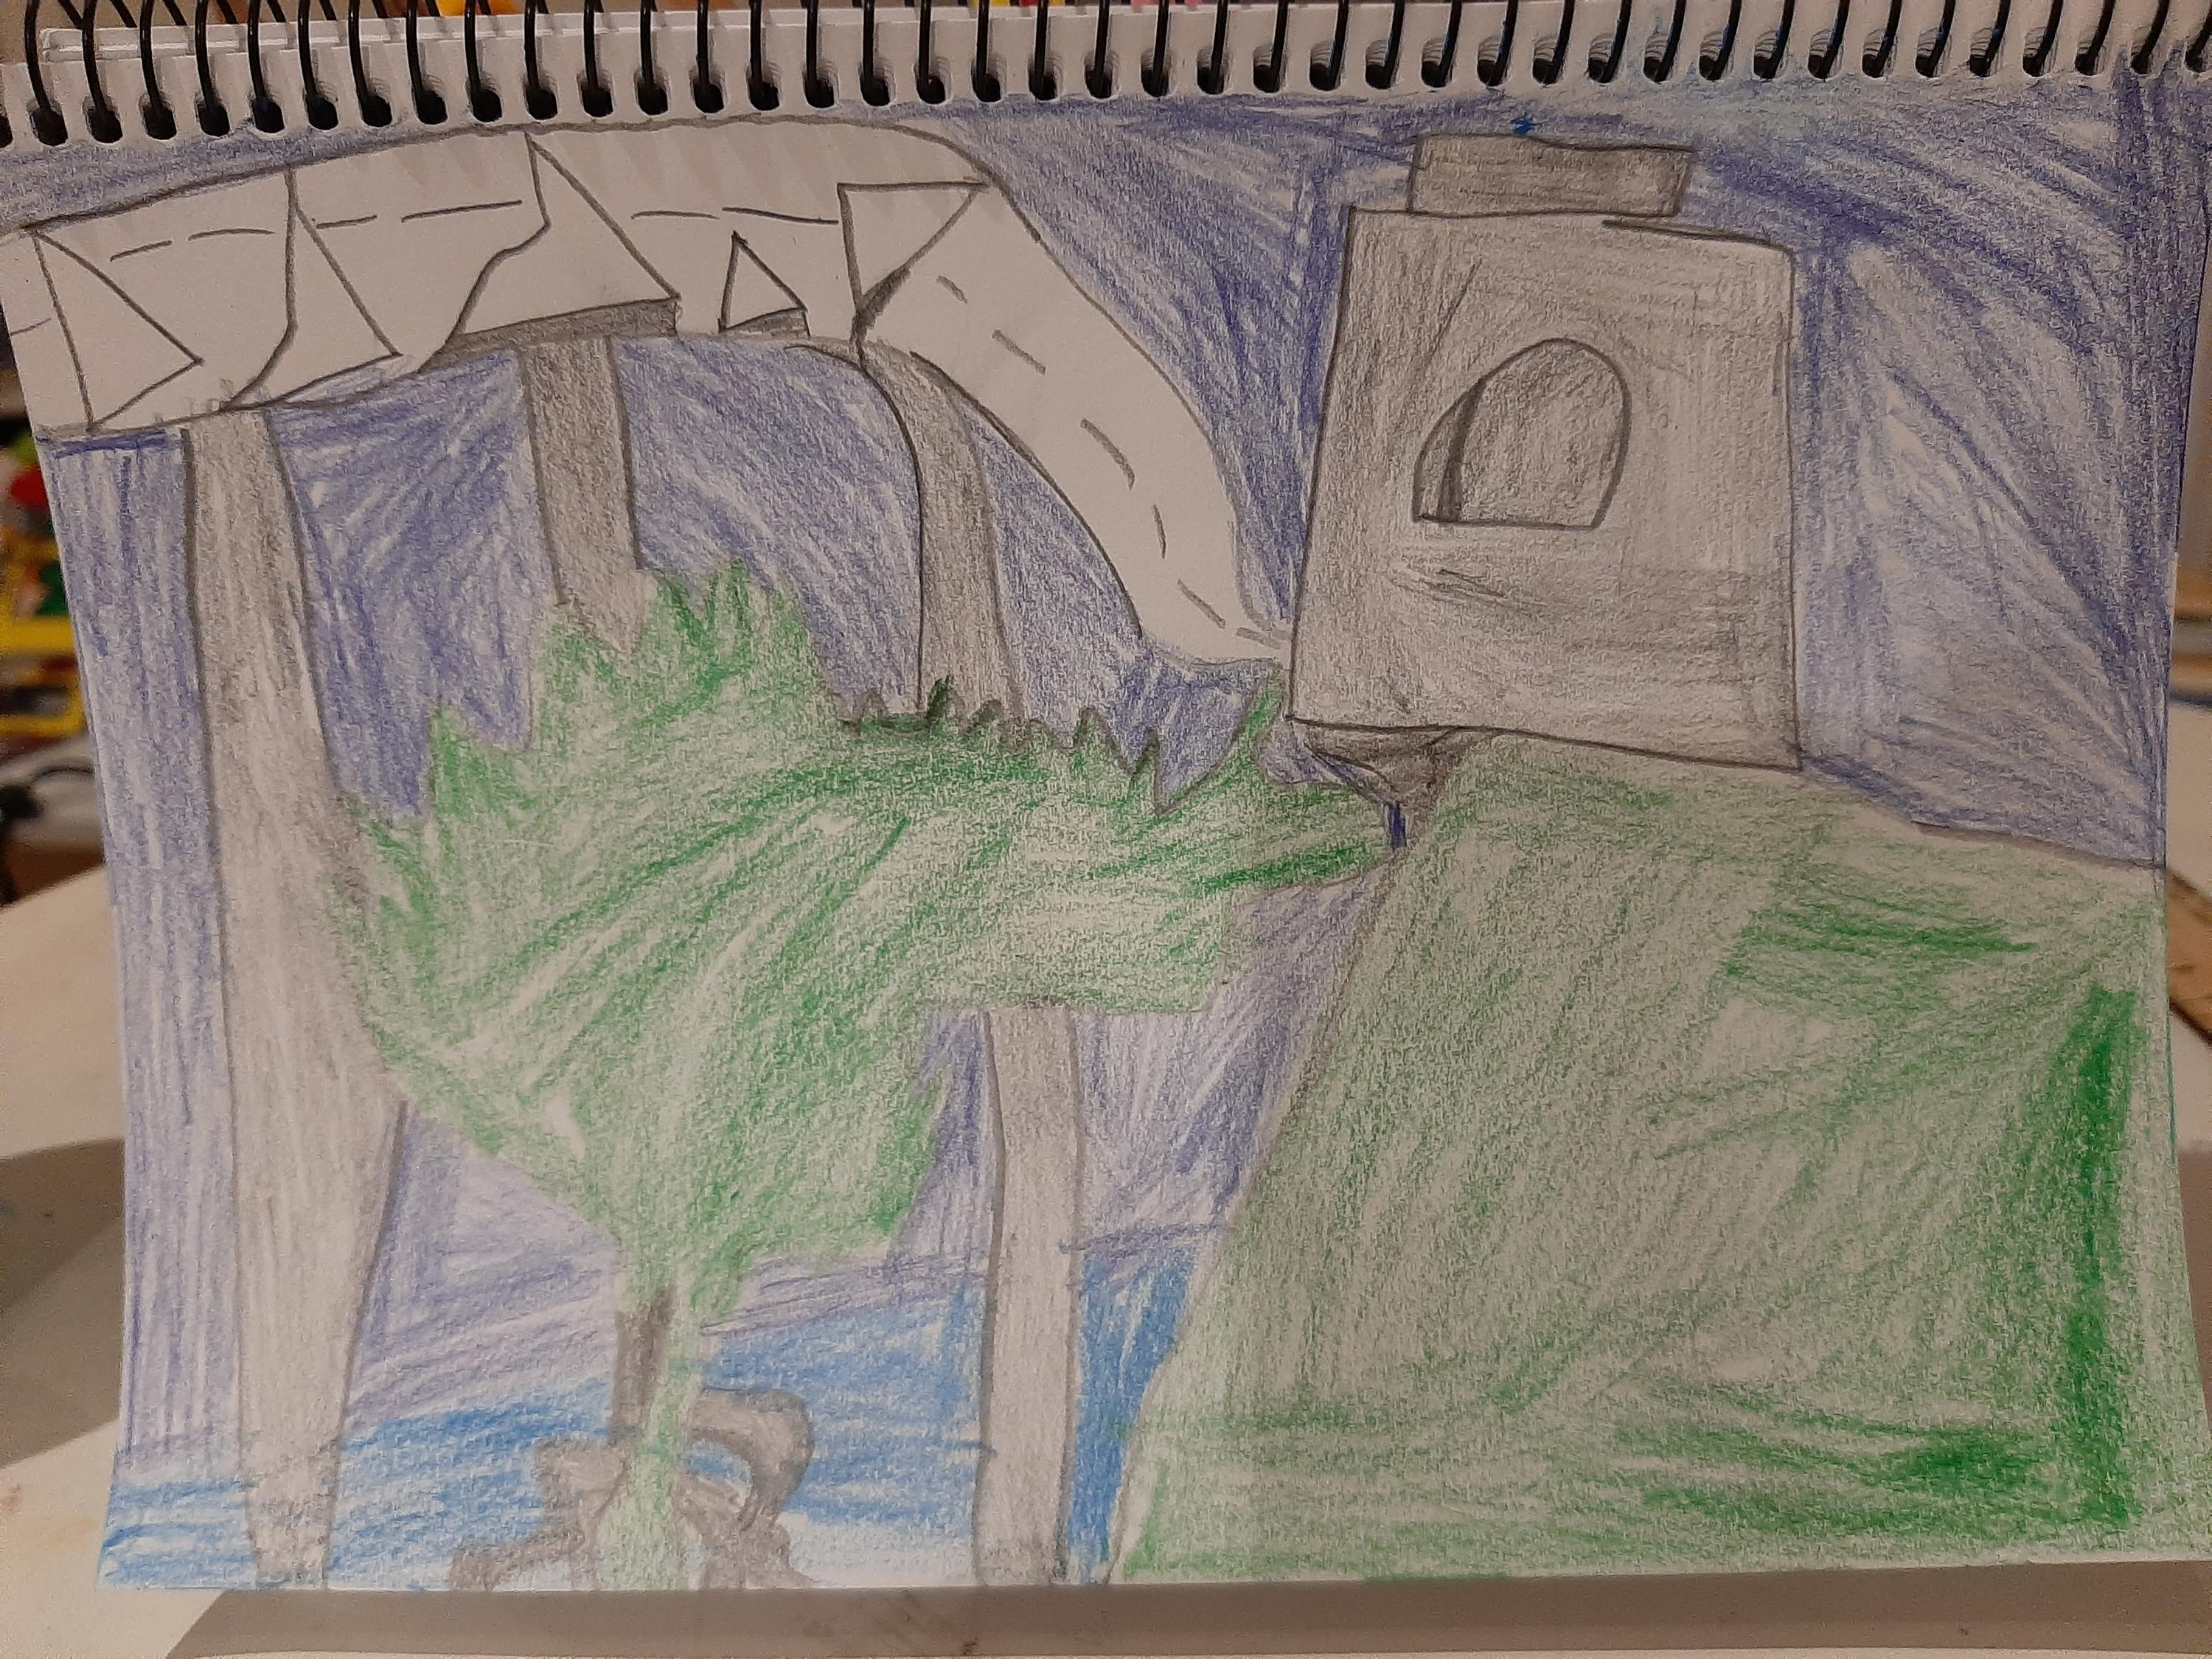 A hand drawn image of the Sydney Harbour Bridge from an Art Club member